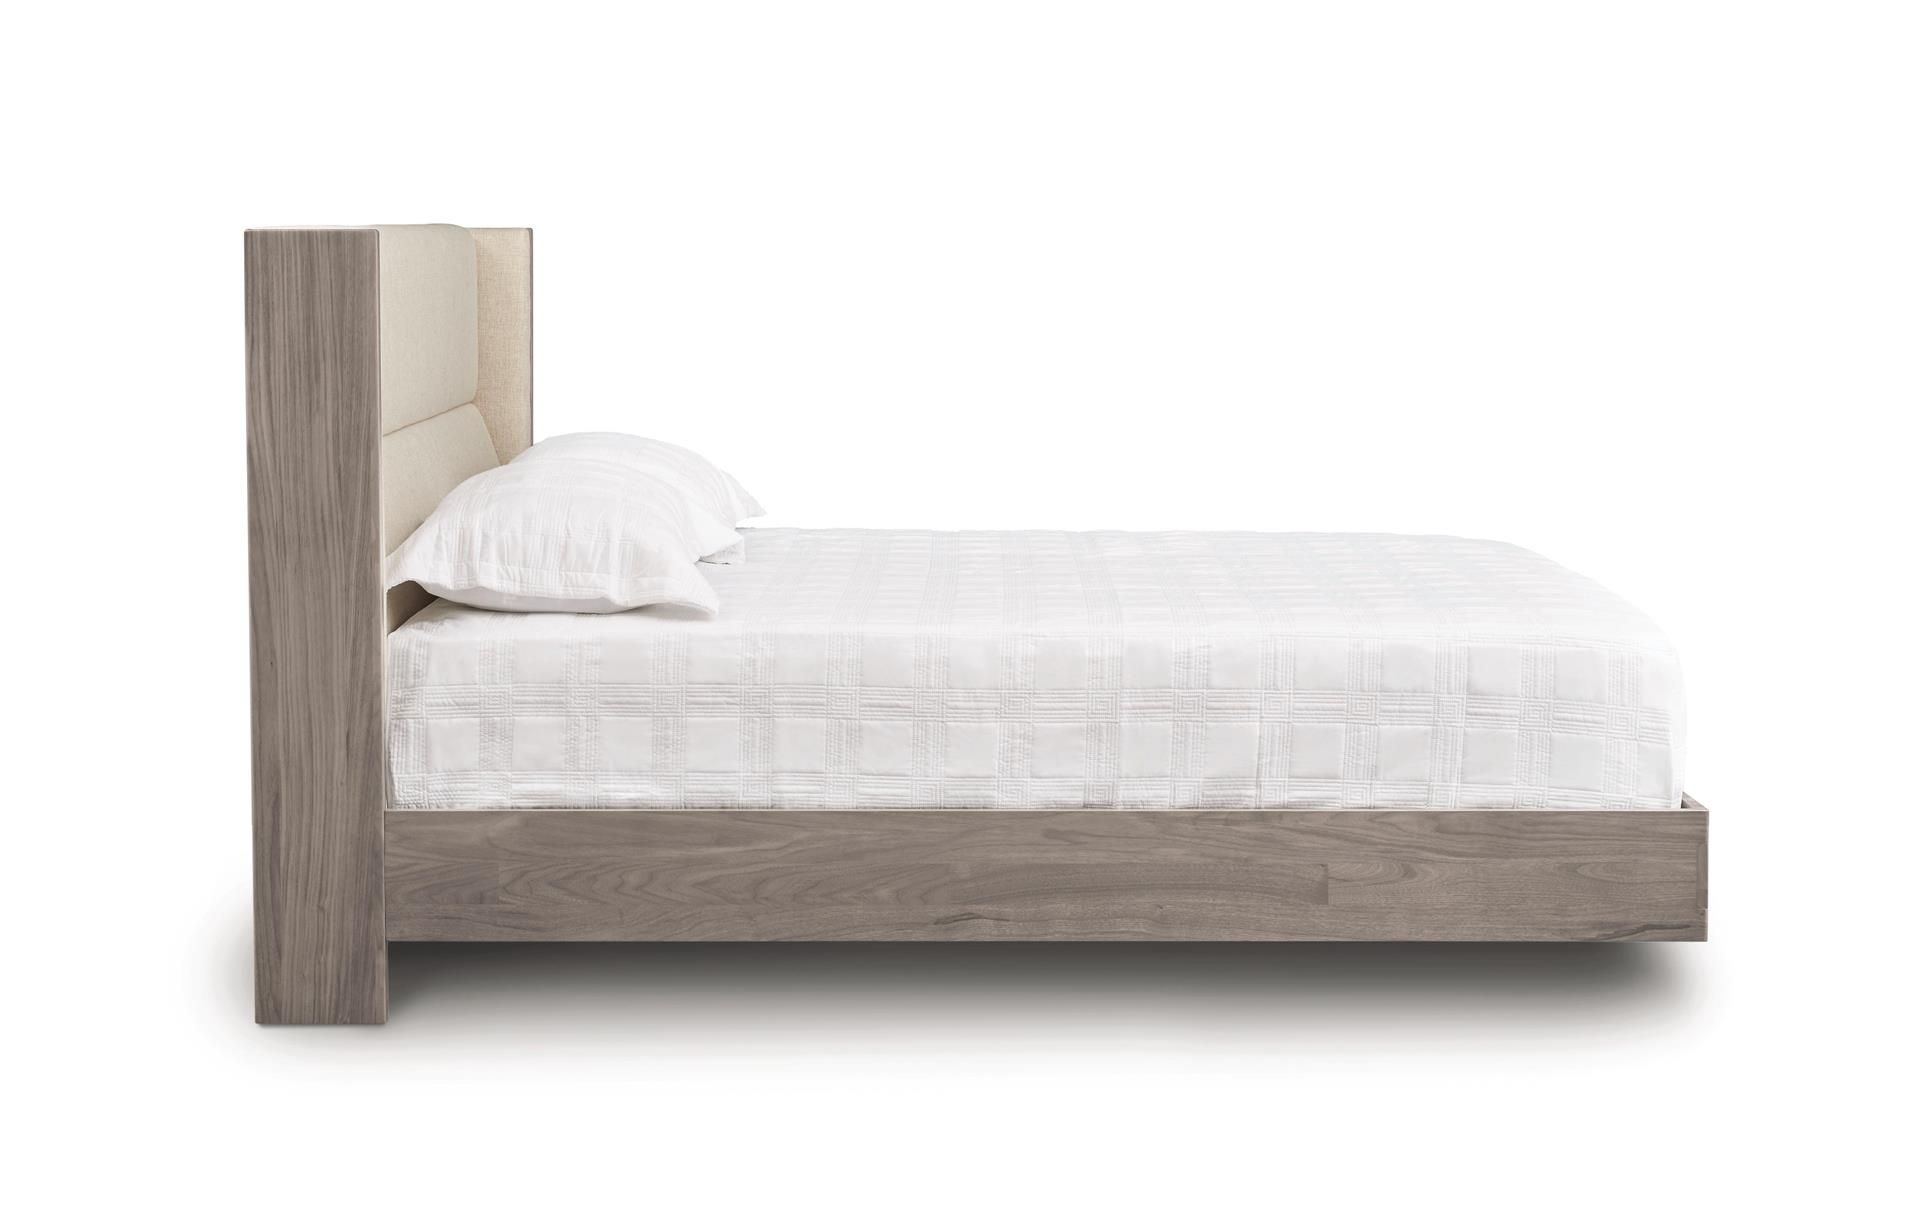 Sloane floating bed by copeland furniture from eco friendly digs